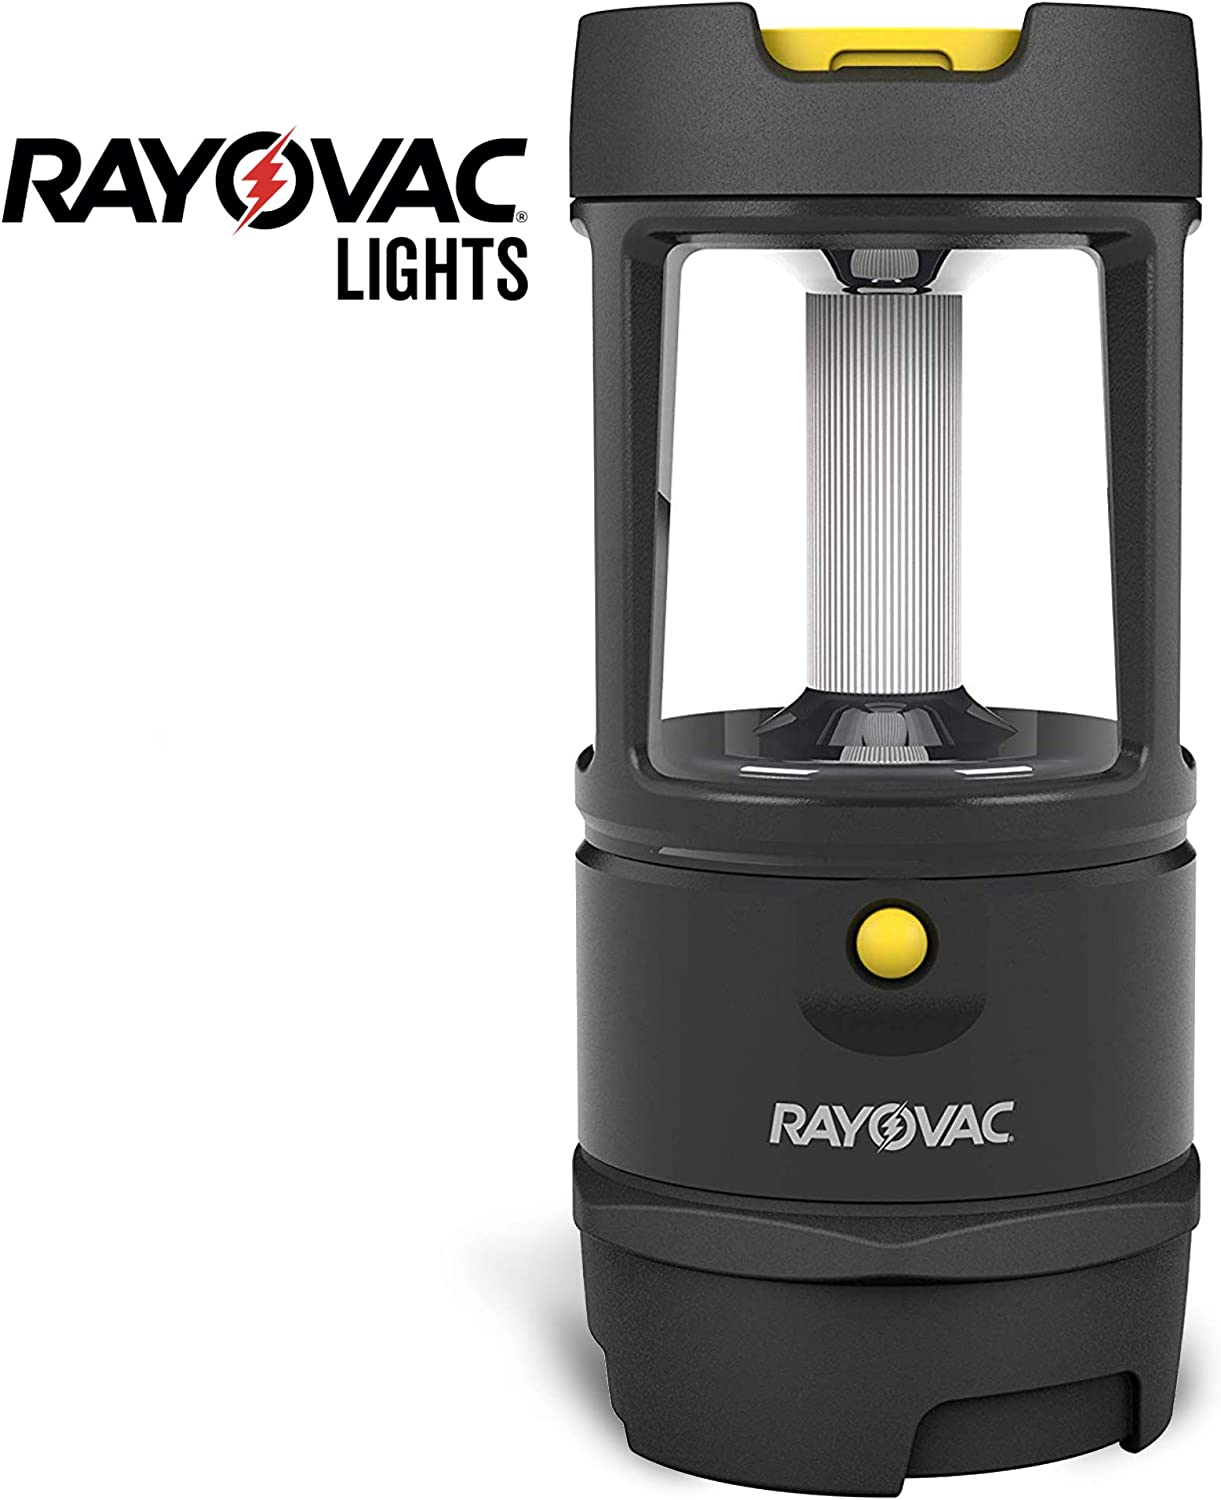 Rayovac Virtually Indestructible LED Camping Lantern Flashlight, 600 Lumens Battery Powered LED Lanterns for Hurricane Supplies, Survival Kit, Camping Accessories, IP67 Waterproof